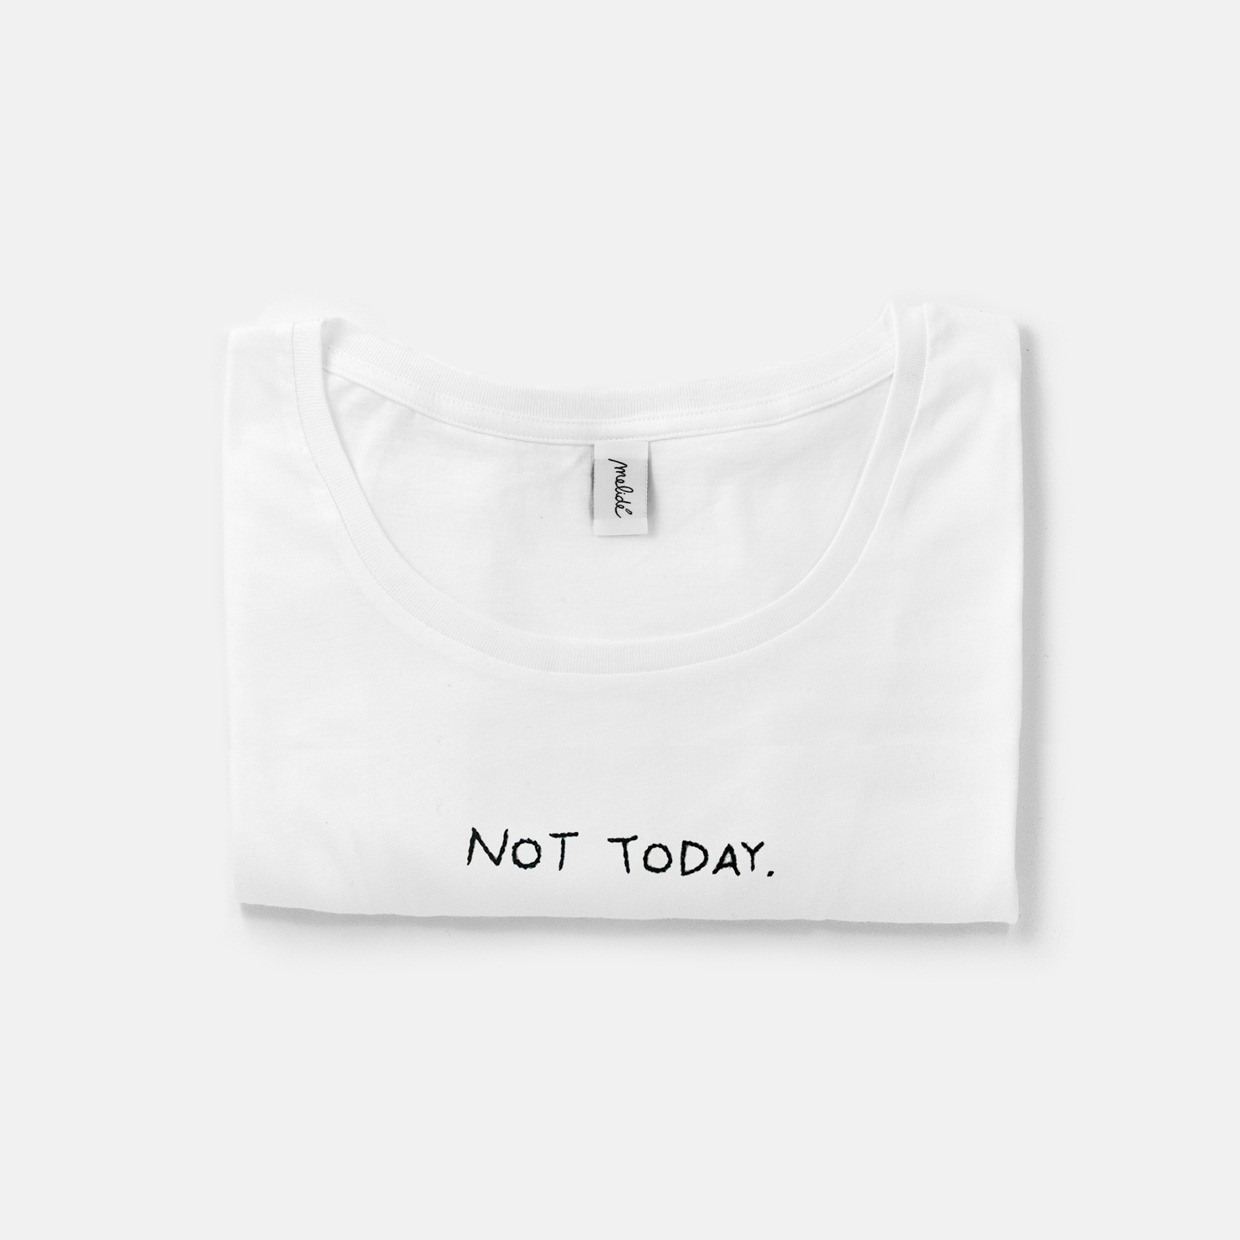 The NOT TODAY Wide Neck Tshirt